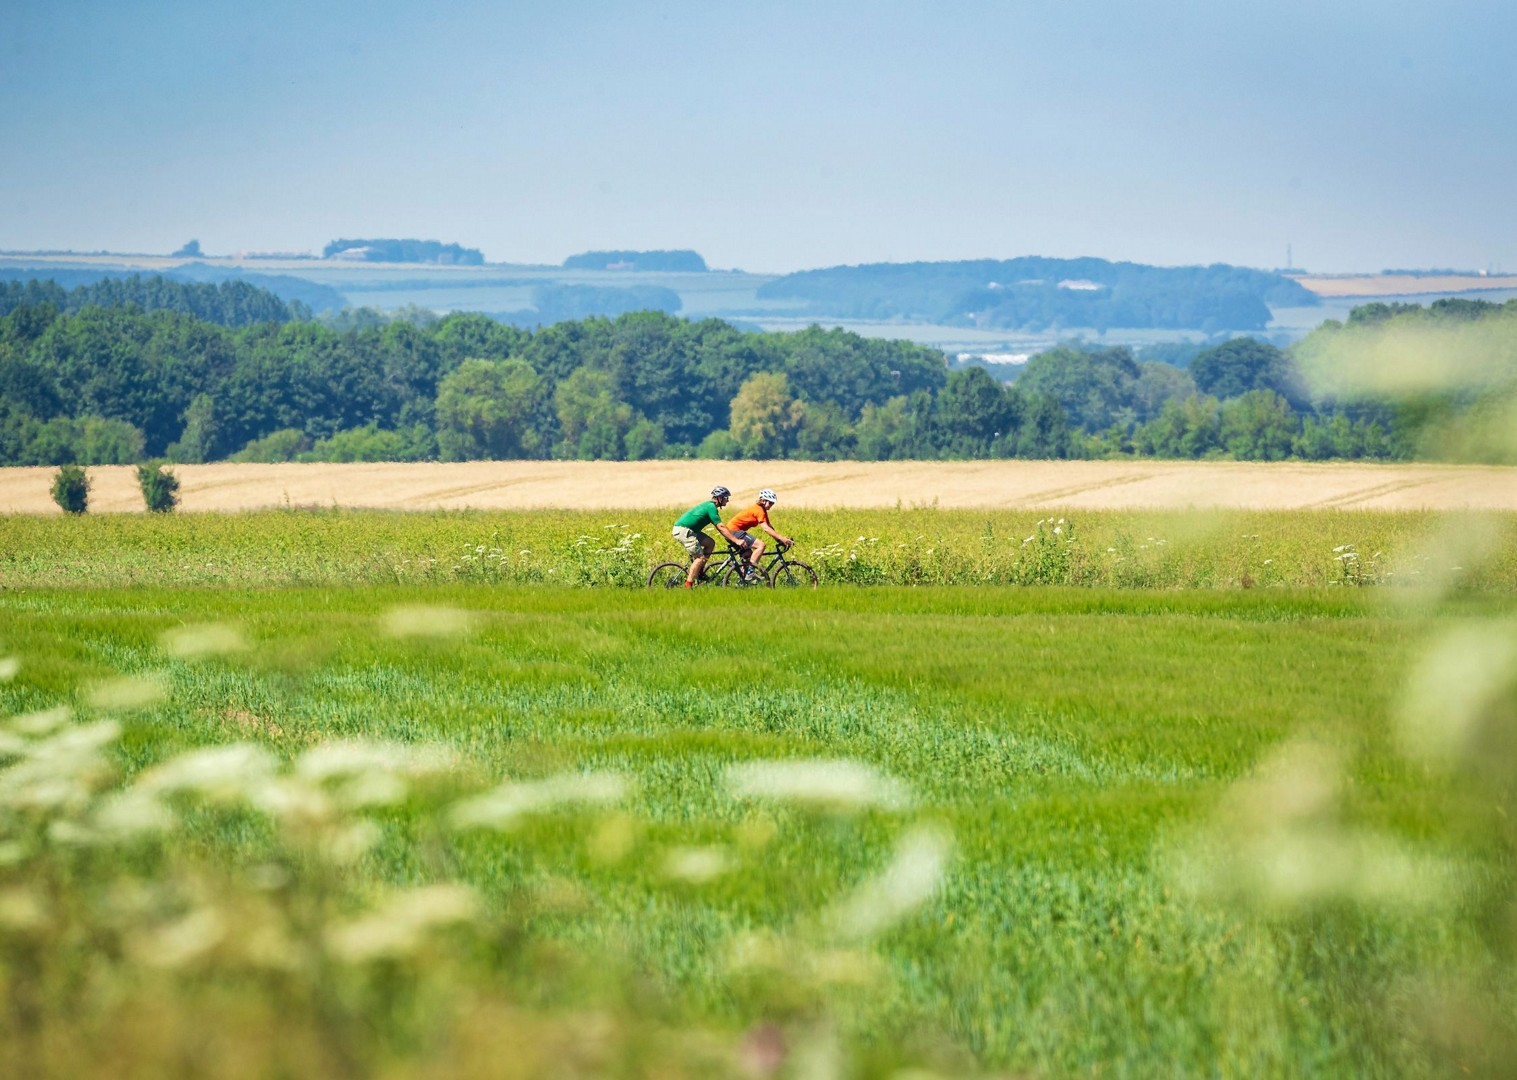 wolds-5-day-leisure-cycling-uk-skedaddle.jpg - NEW! UK - Yorkshire Wolds - Leisure Cycling